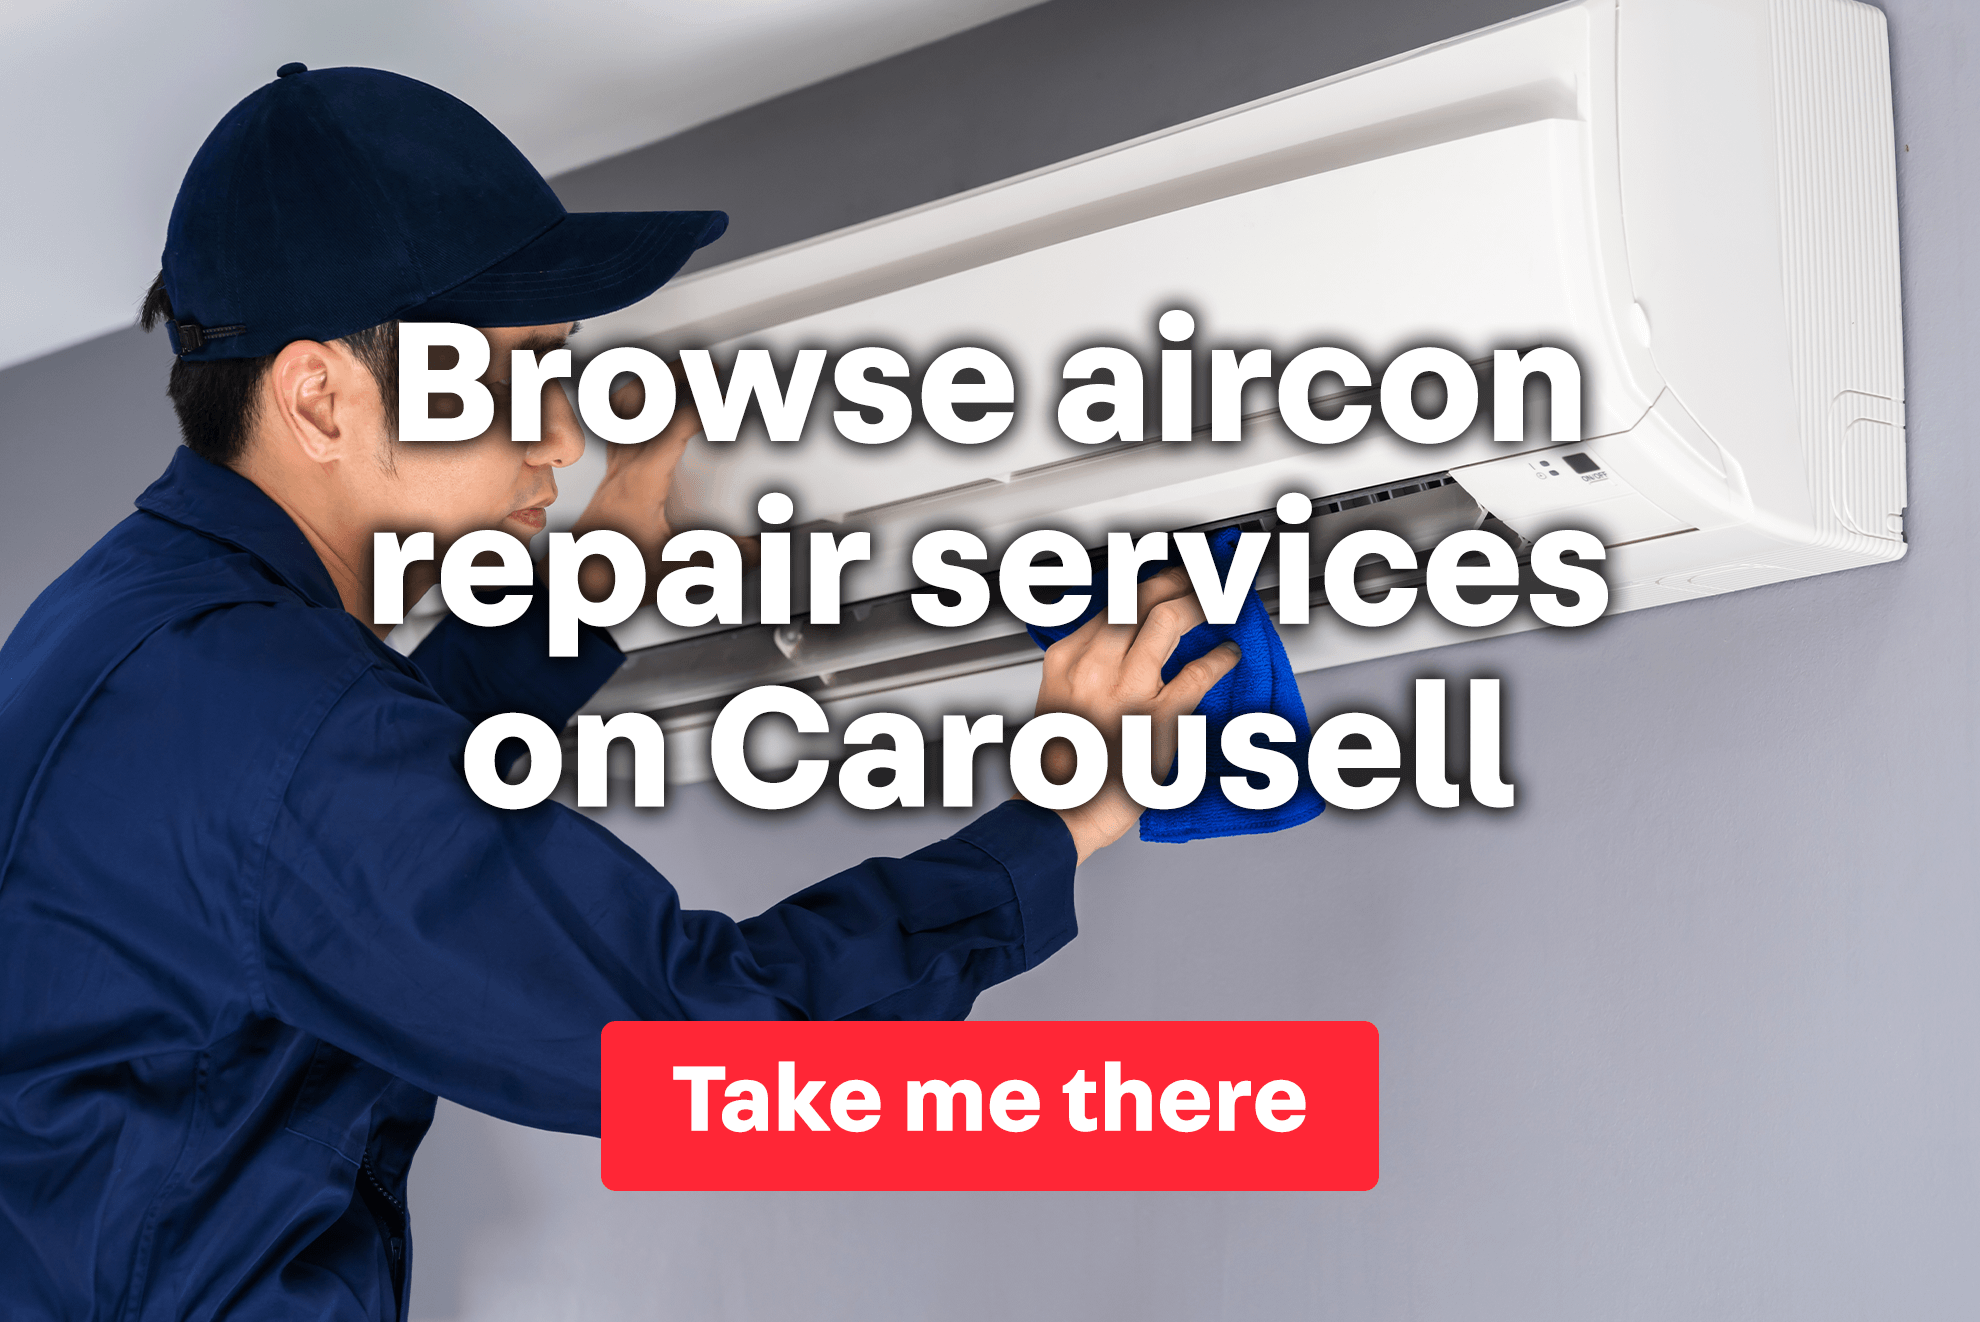 Aircon cleaning services on Carousell